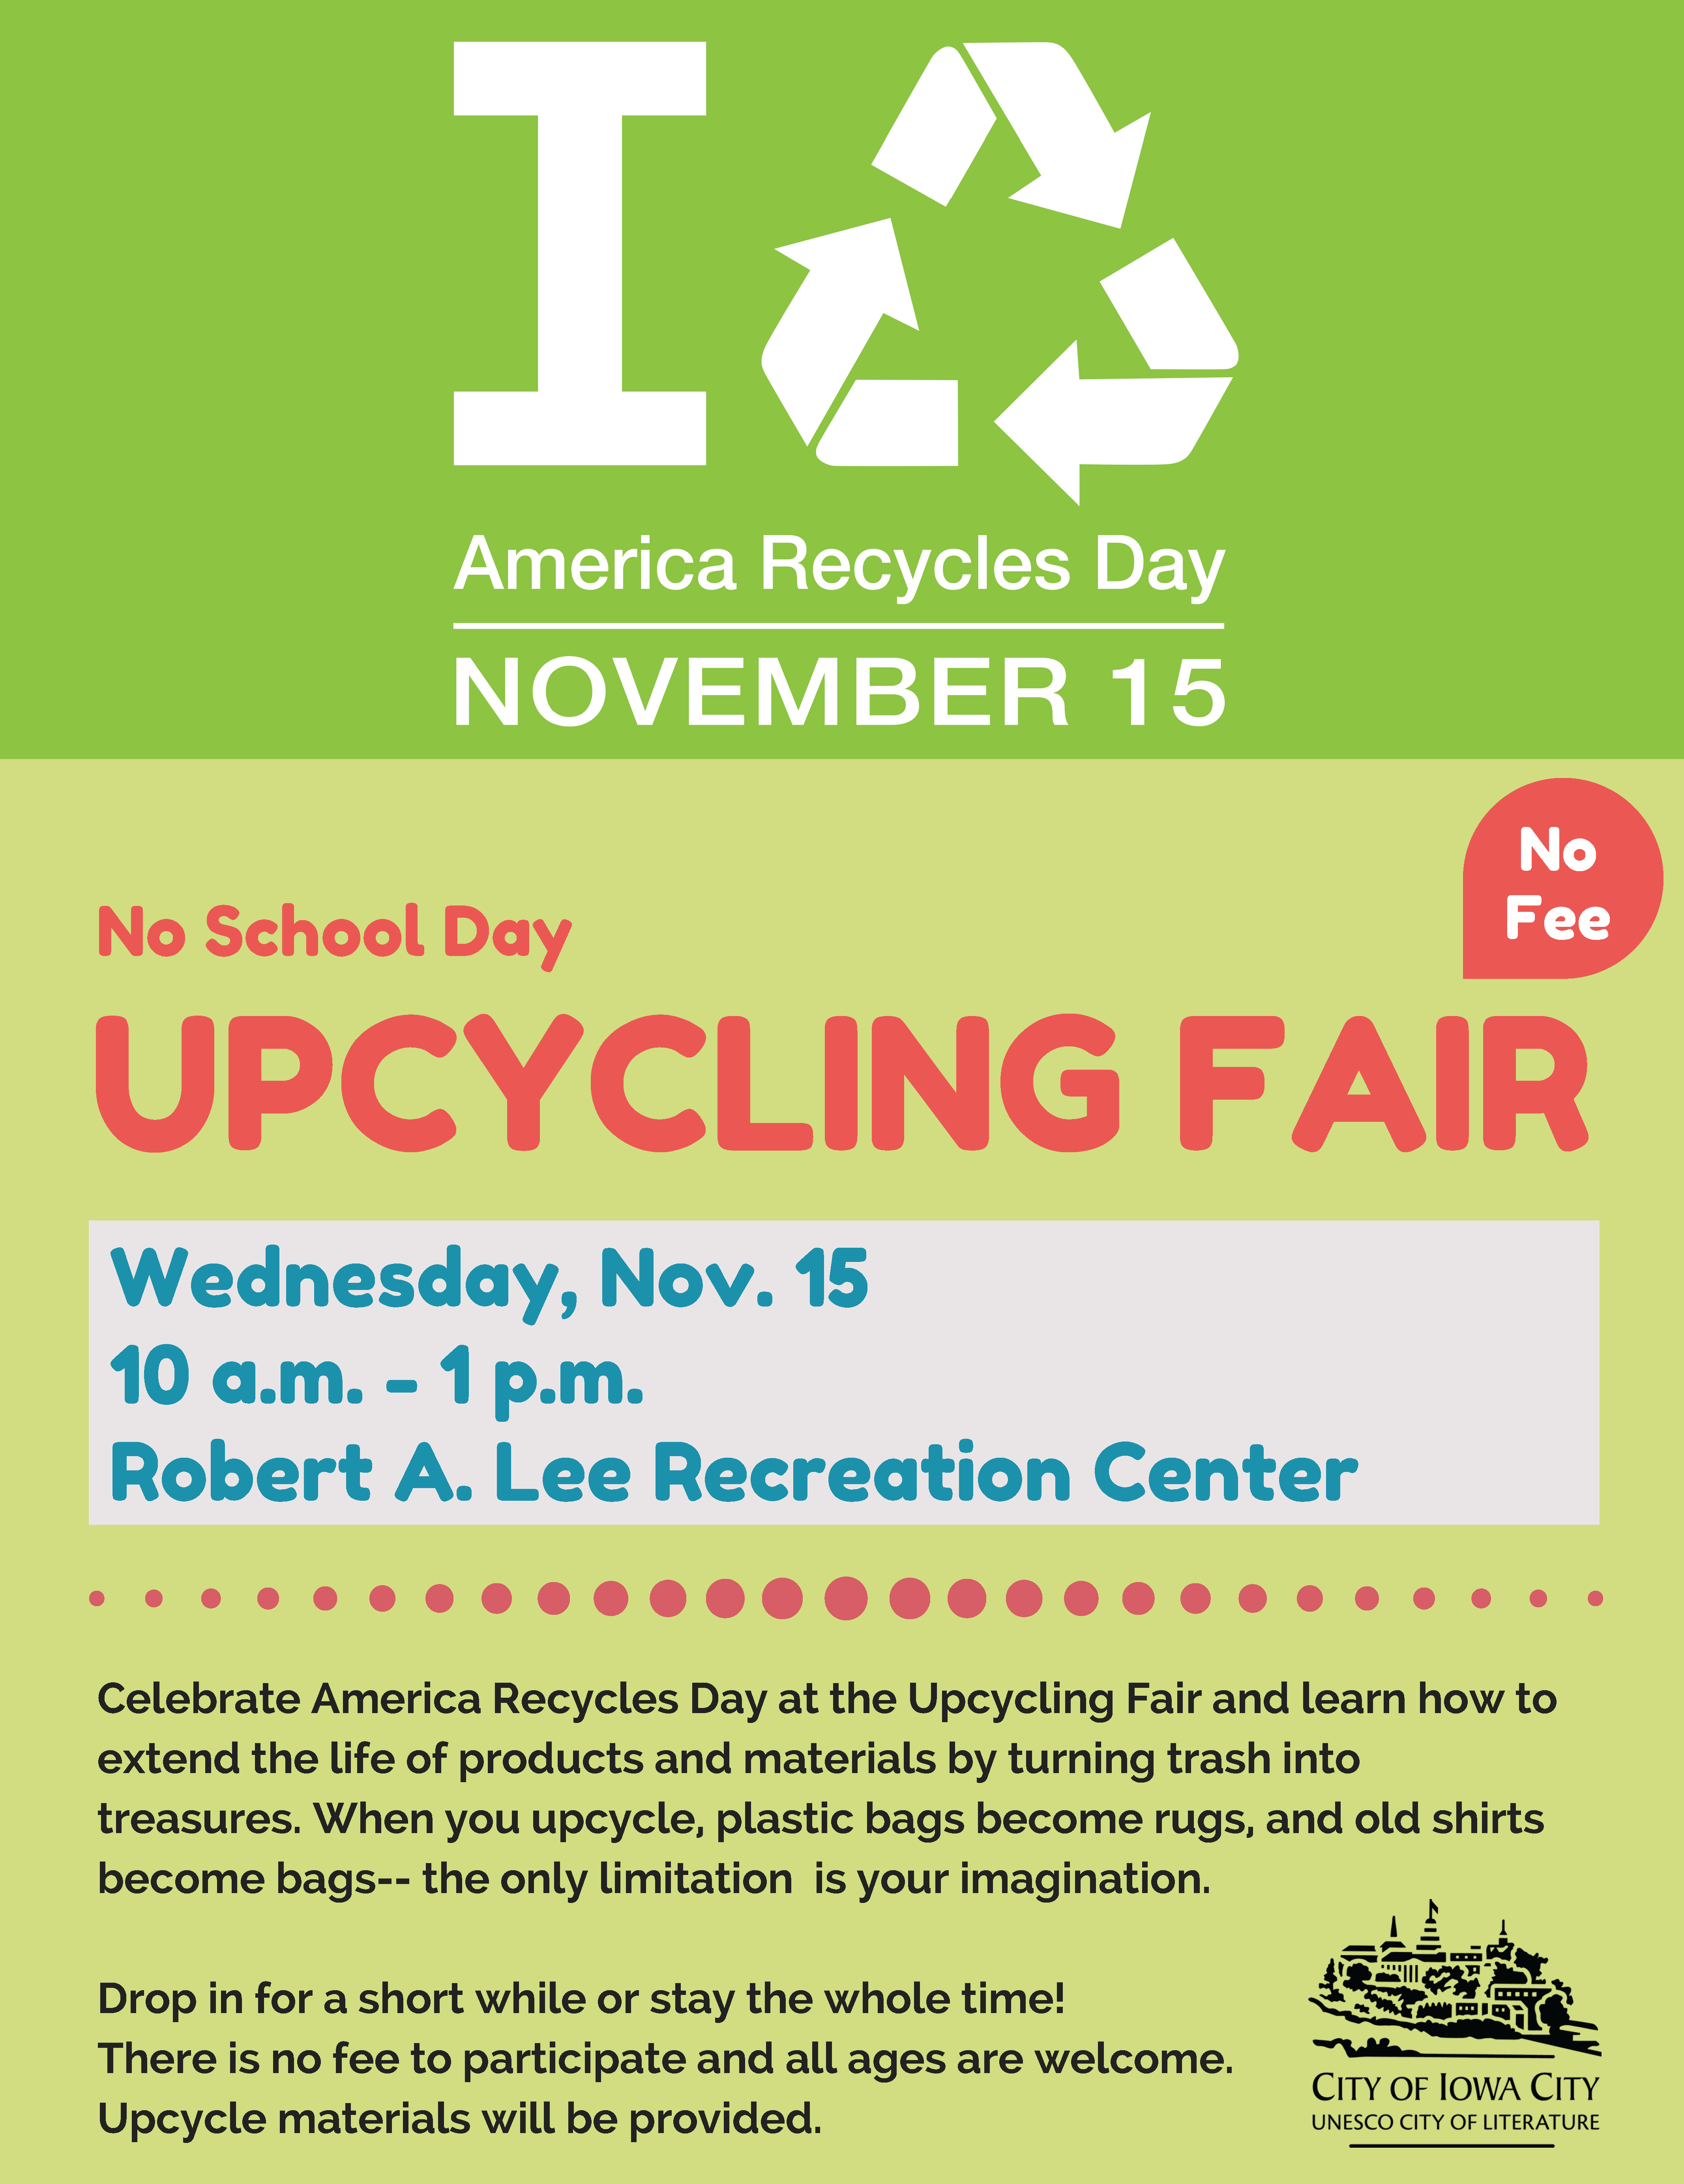 A flyer promoting America Recycles Day Upcycling Fair in Iowa City.